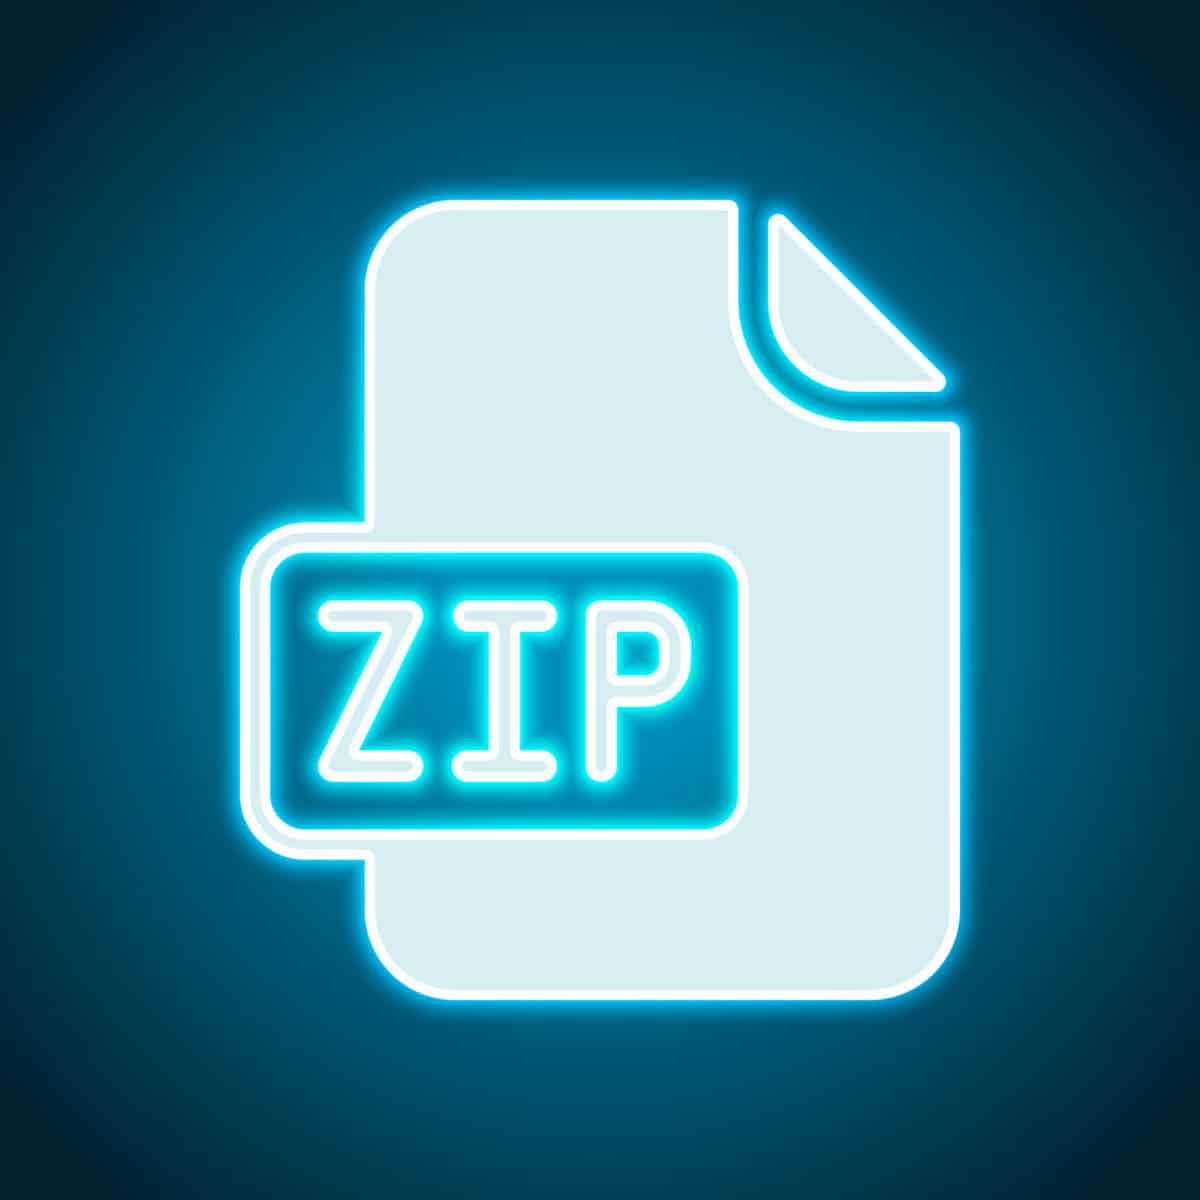 zip files and directories in linux e1593389207541